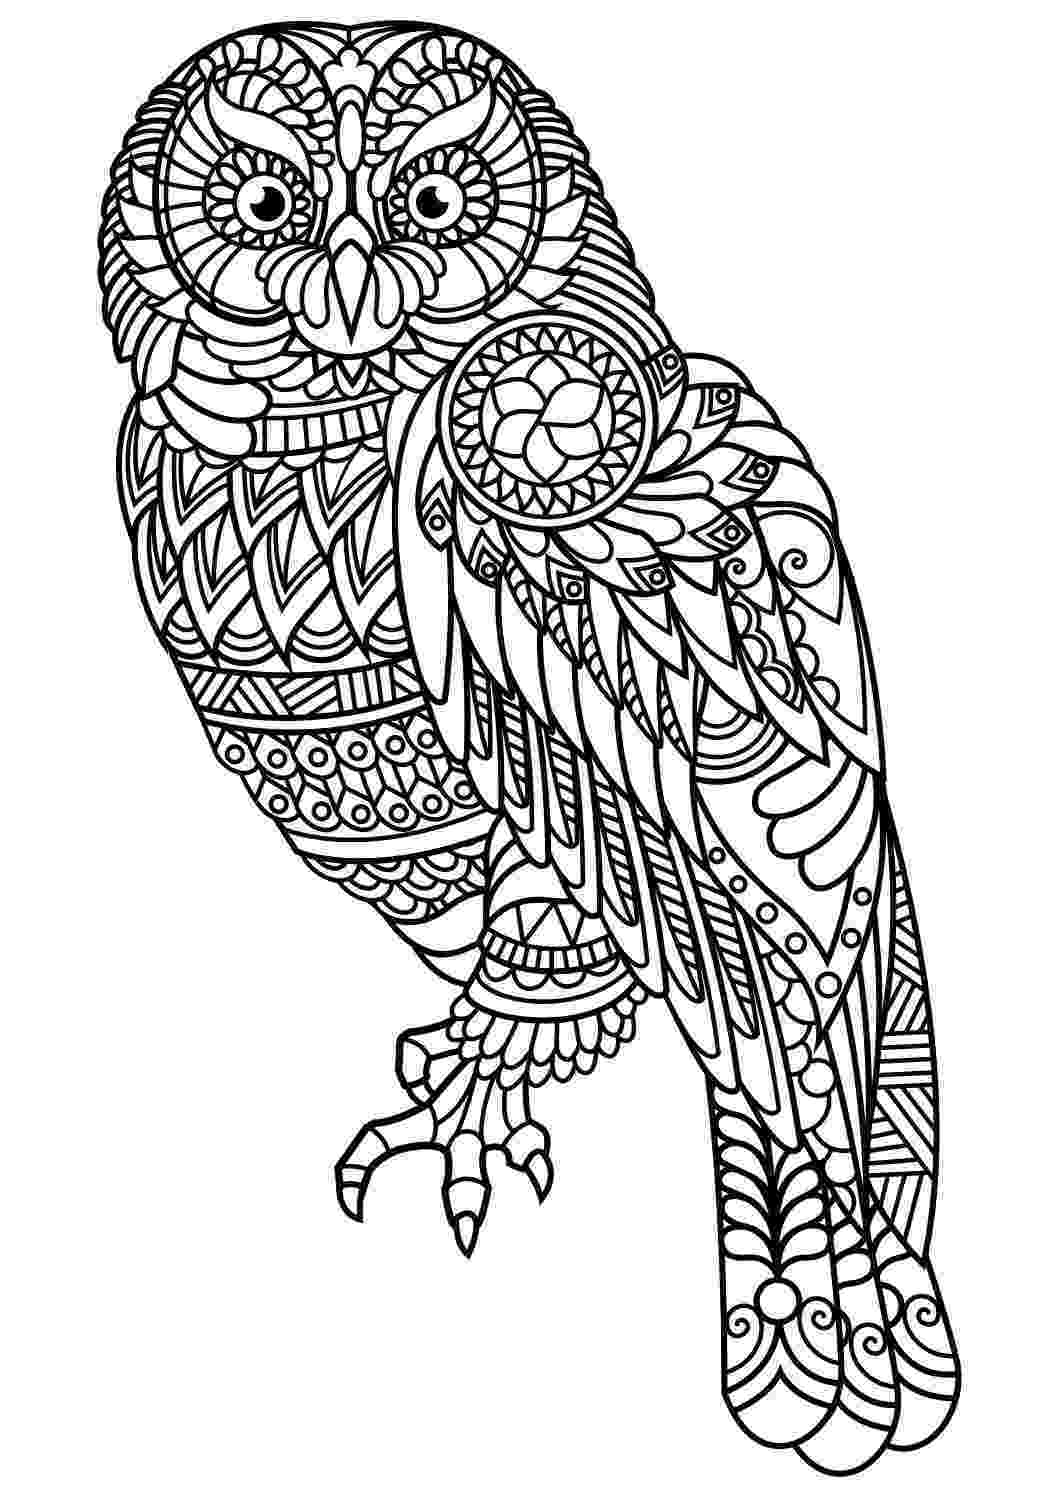 animal coloring book for adults animal coloring pages pdf owl coloring pages bird coloring book for adults animal